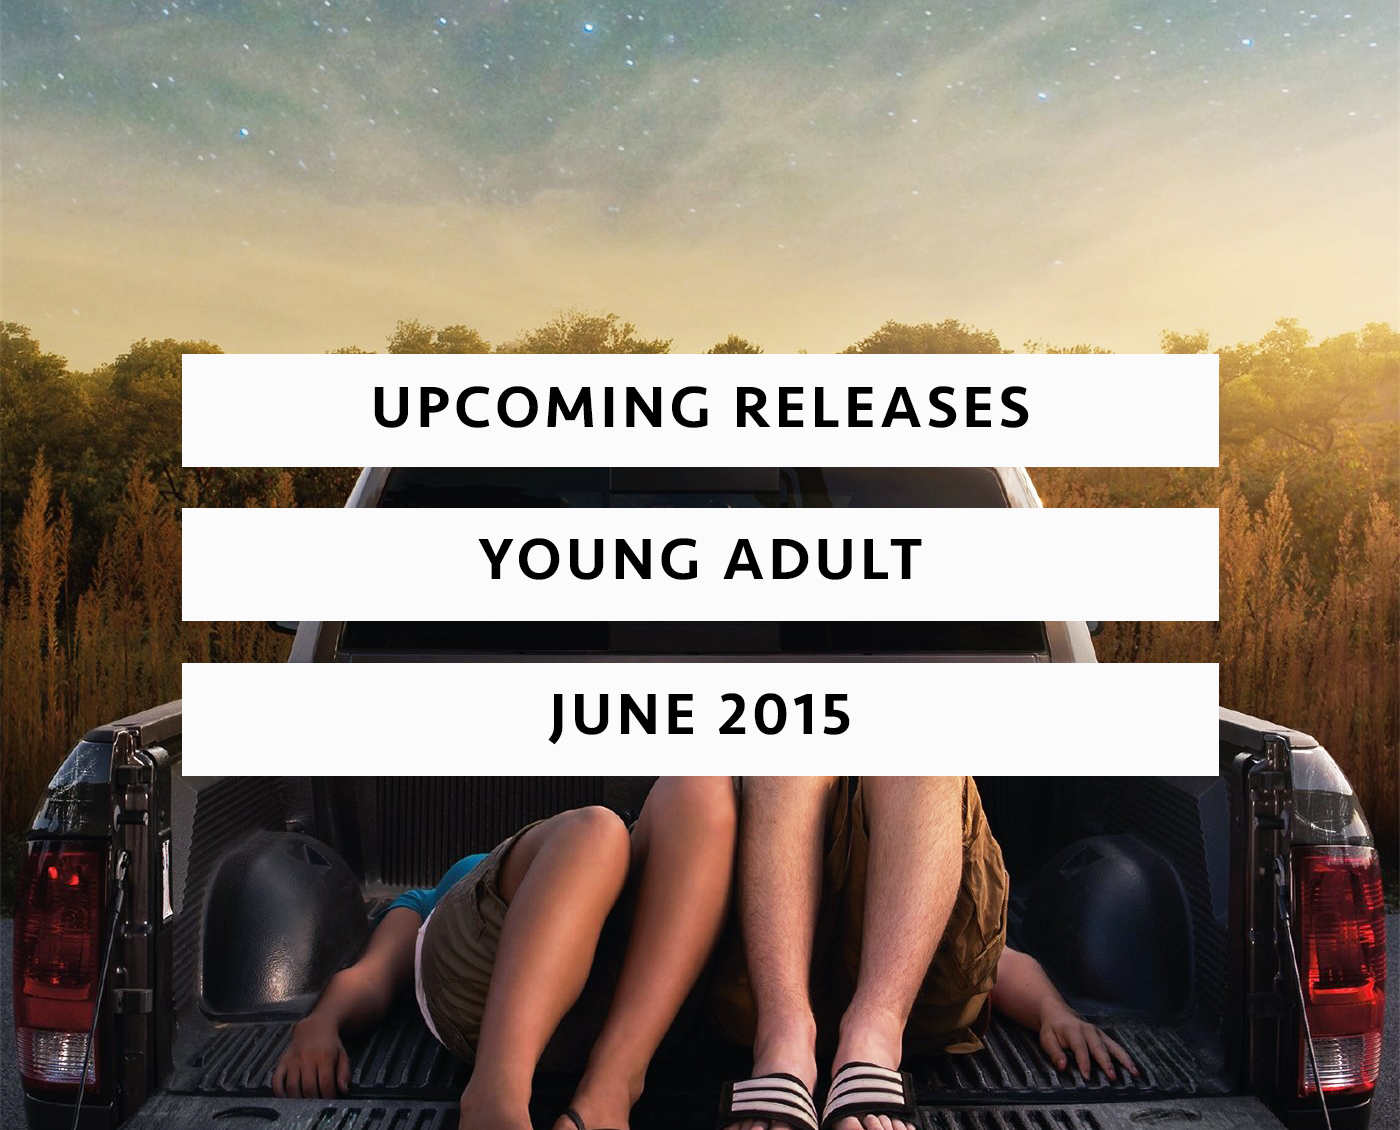 Upcoming Releases June 2015